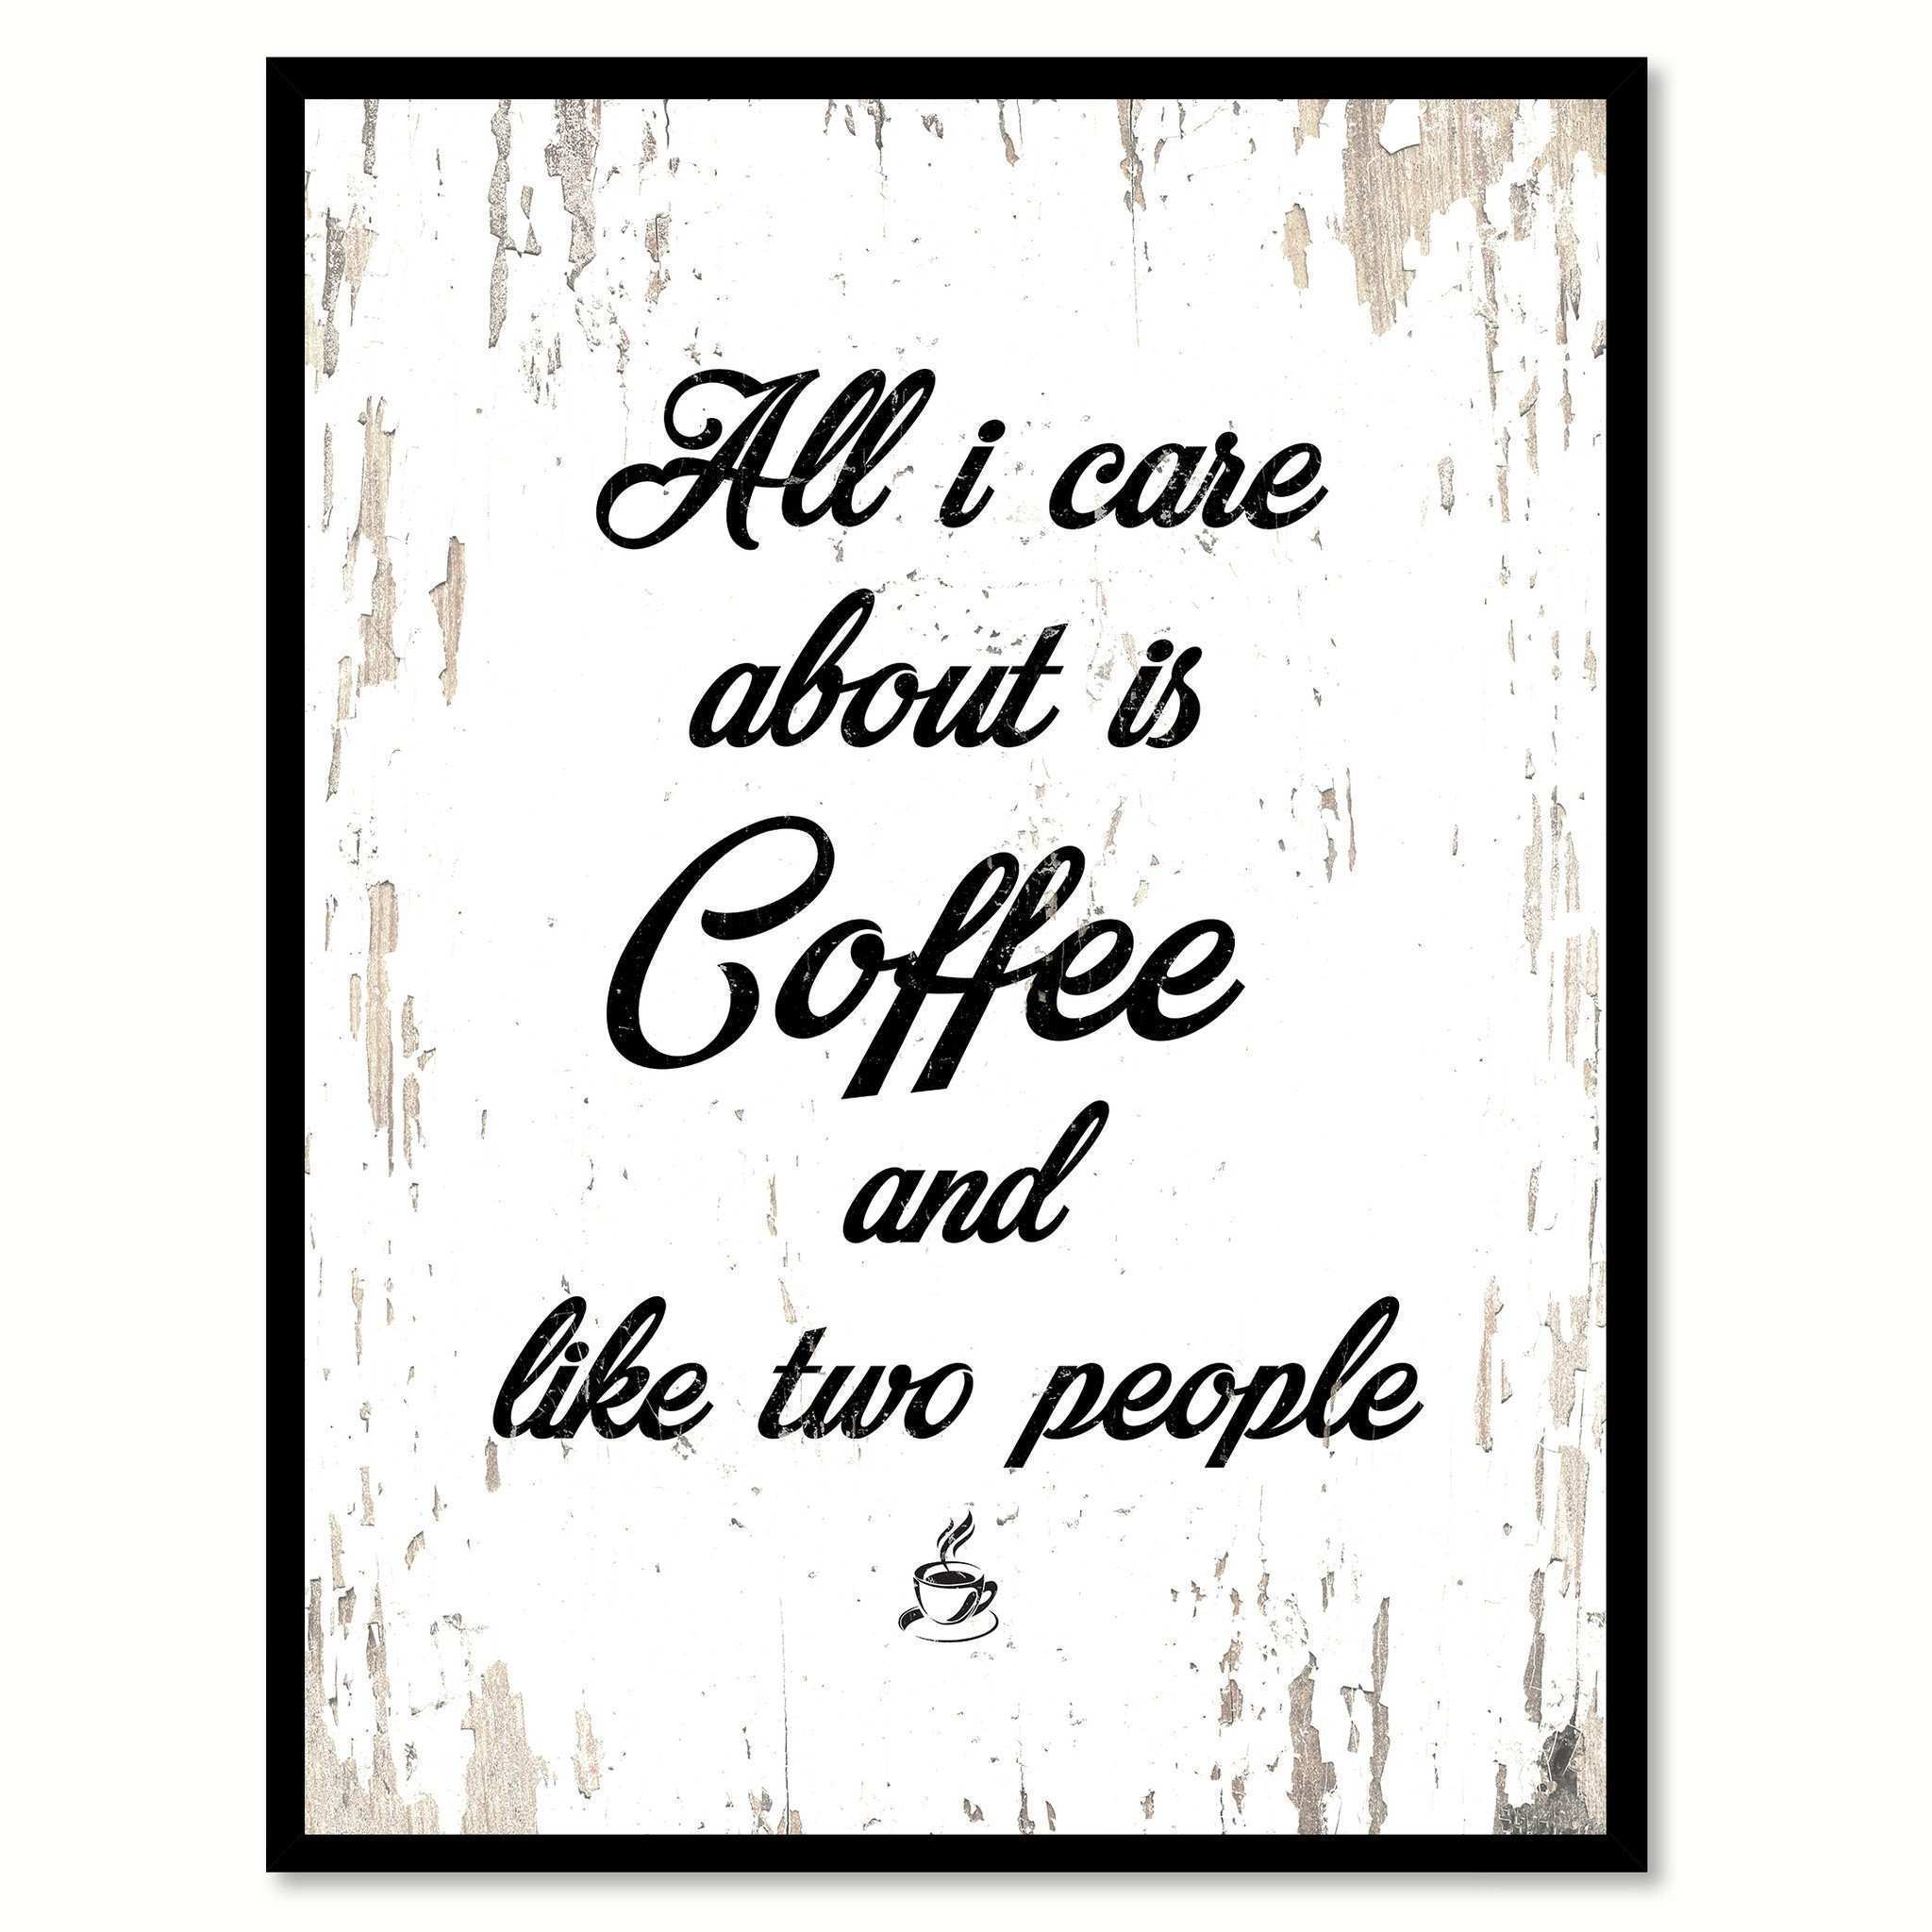 Framed Letter Wall Art Awesome All I Care About is Coffee & Like Two People Coffee Wine Saying